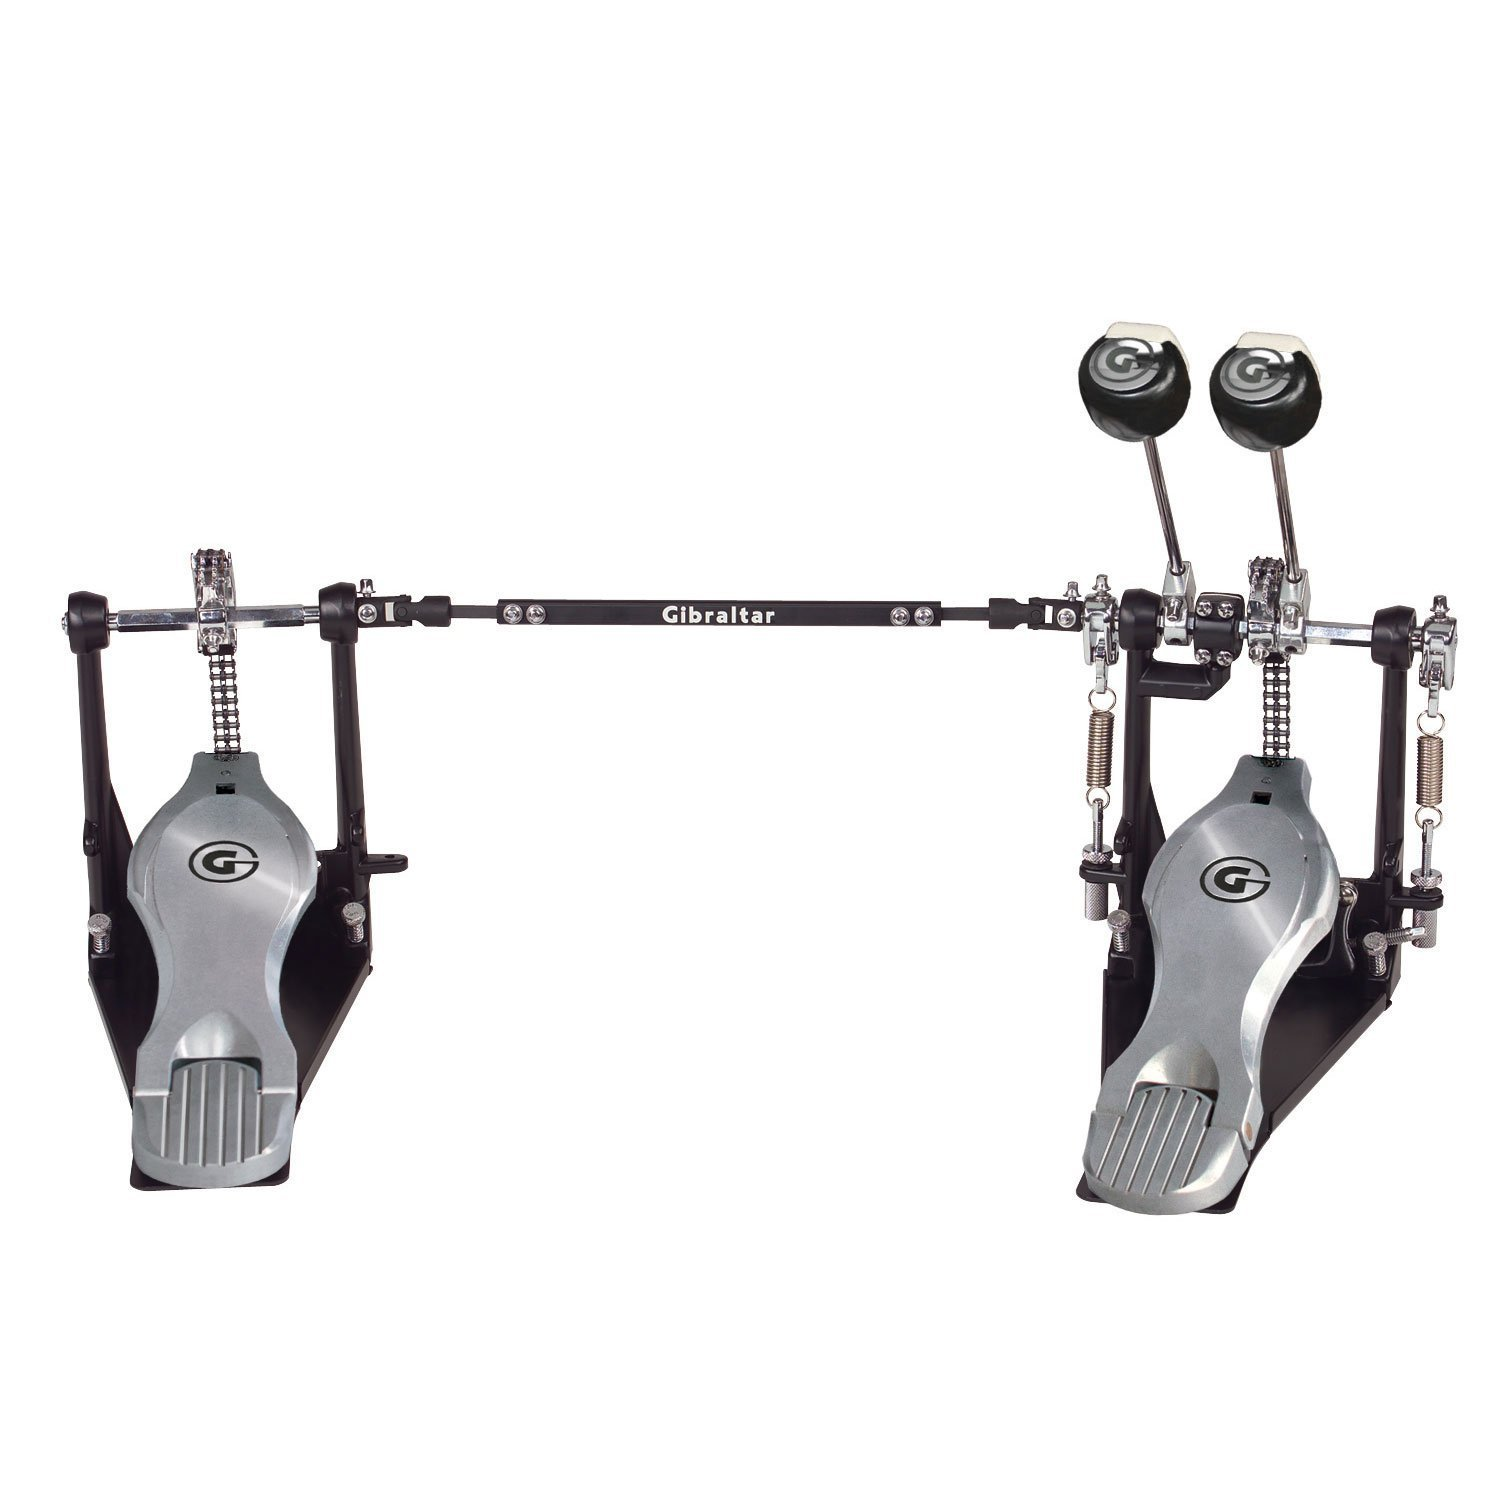 Gibraltar SC-RP171 Hh Double Bass Attachment Clamp NEW